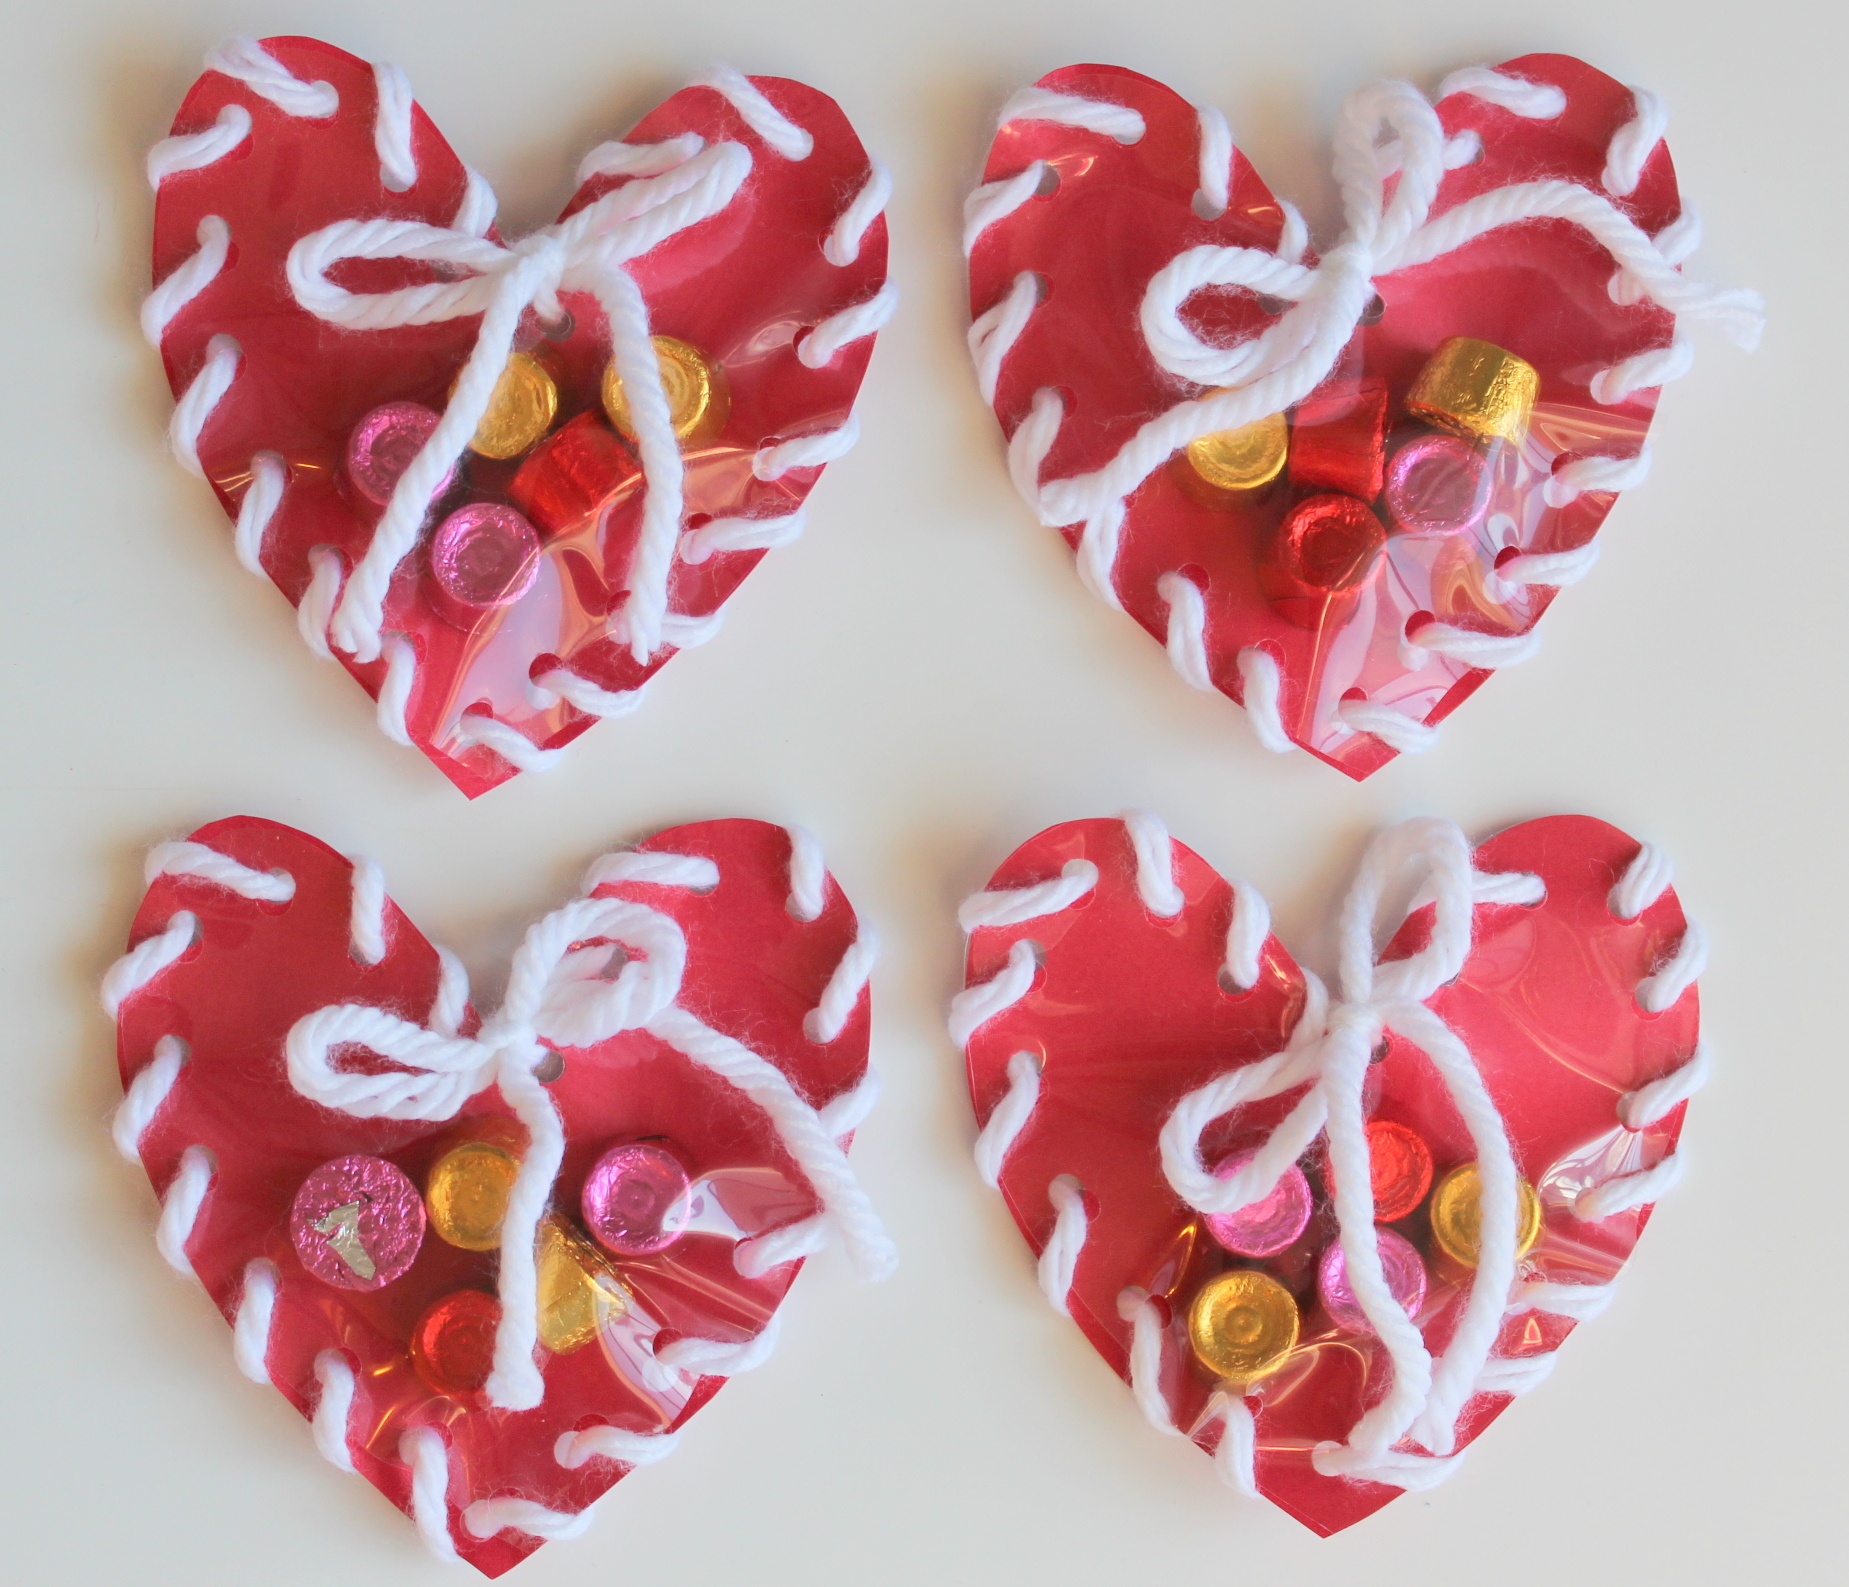 Lollydot Hand Sewn Paper Heart Valentine Craft For Kids Lollydot